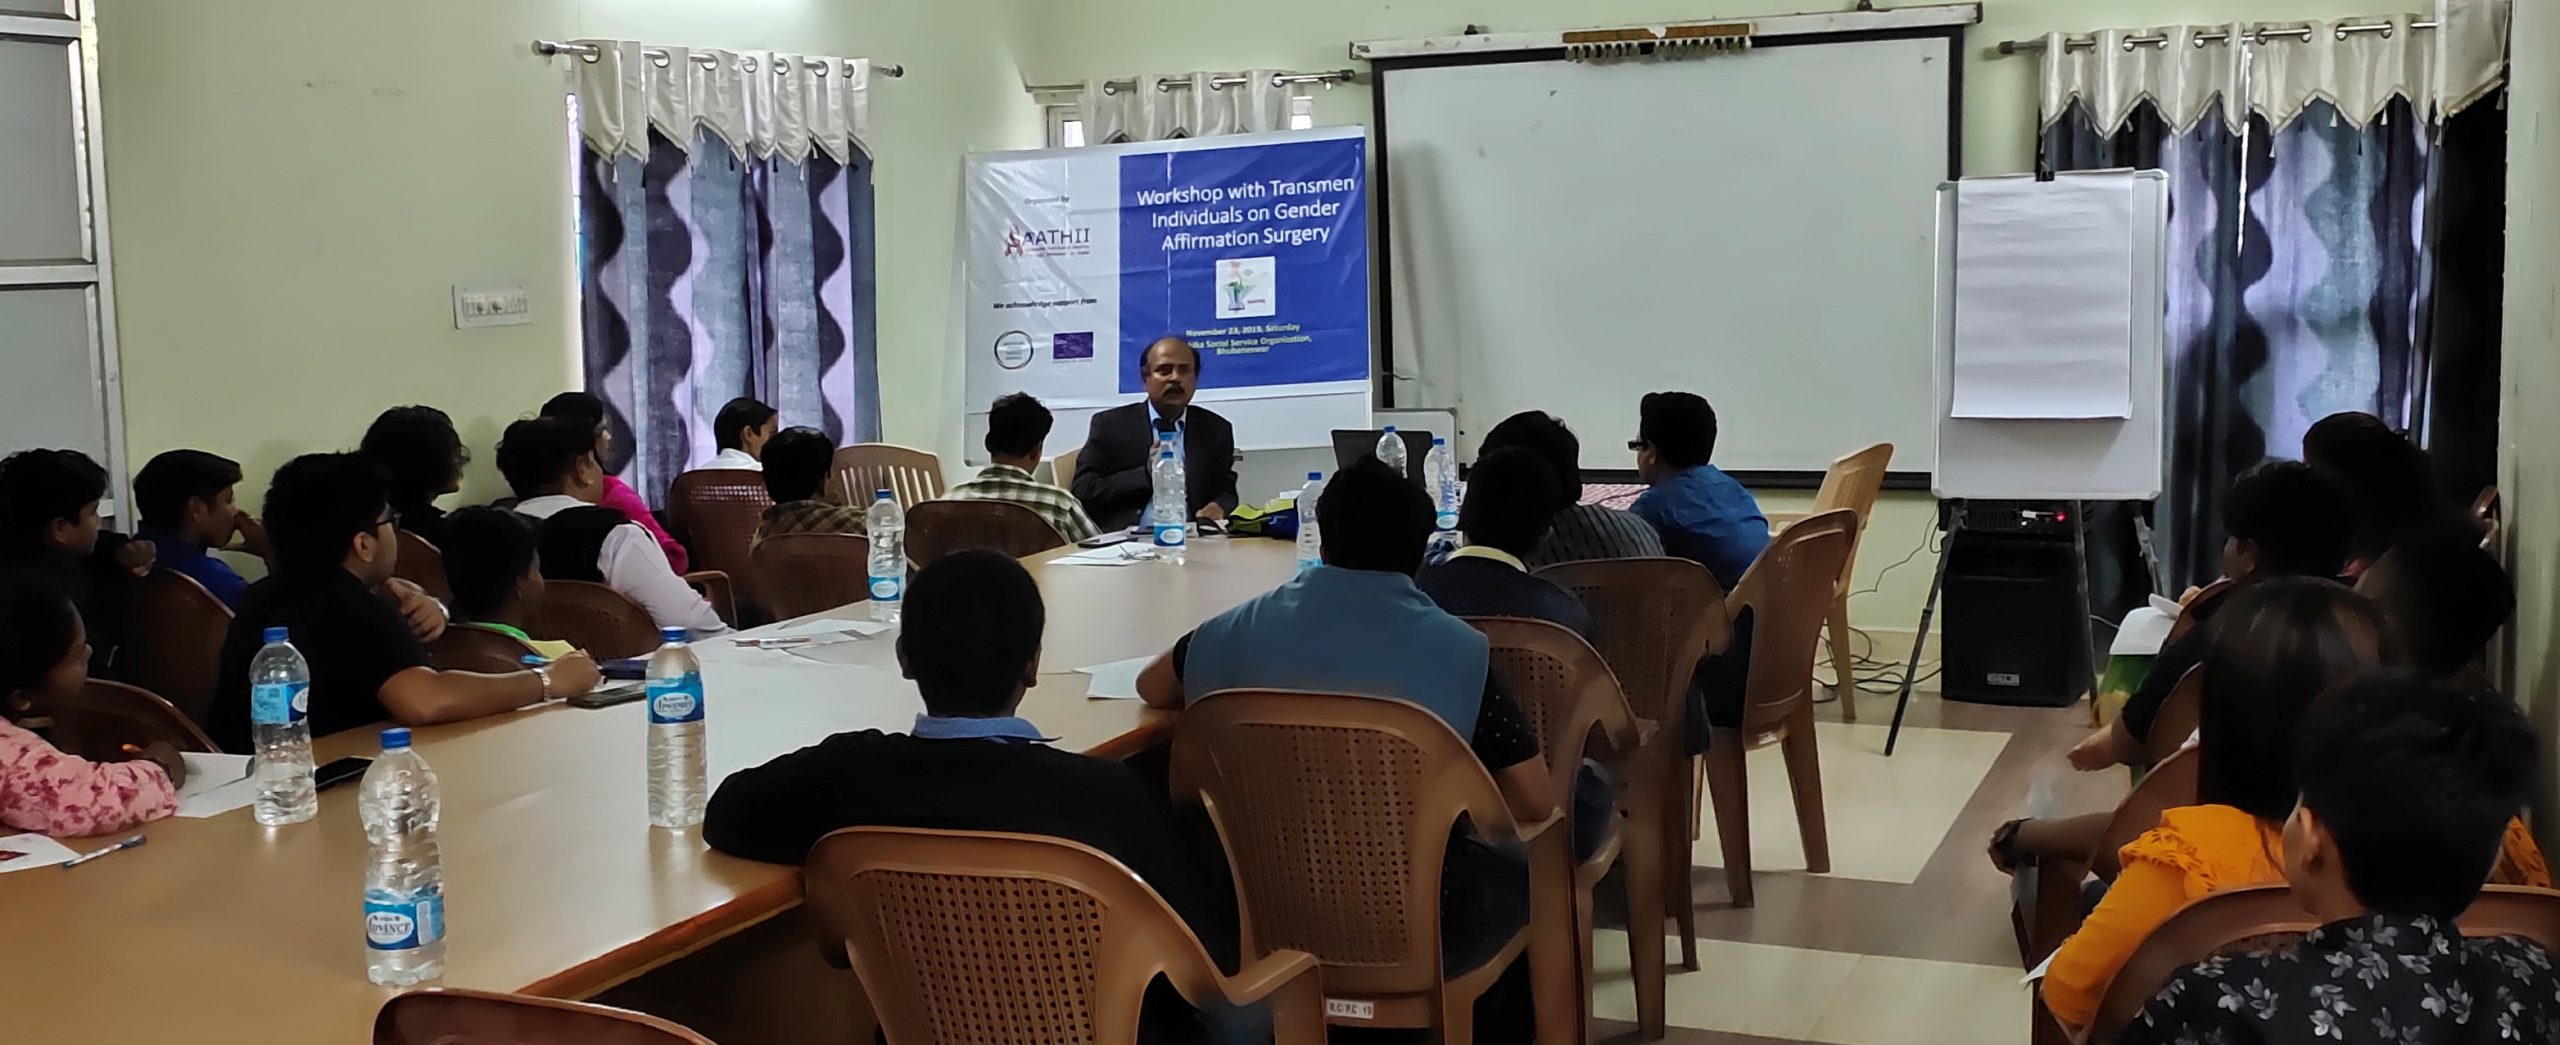 """This photograph shows a workshop on gender affirmative surgery in progress with trans masculine individuals and their allies in Bhubaneswar, Odisha. Around 22 individuals are seated in a conference room, facing a resource person sitting and speaking on the far side of the room. The photograph has been taken from behind the audience and only the speaker's face is visible. Just behind the speaker is a large banner that says """"Workshop with Transmen Individuals on Gender Affirmative Surgery"""". The banner also has the logo of SAATHII, the organizers of the workshop, and their partner agencies (names not visible). A large screen for projection, a white board with a flip chart, and windows with curtains drawn can also be seen behind the speaker. Most of the participants are seated on chairs placed around a long centre table, with some of them taking notes on the speaker's presentation. Some mineral water bottles are placed on the table for the participants. Photo courtesy SAATHII"""